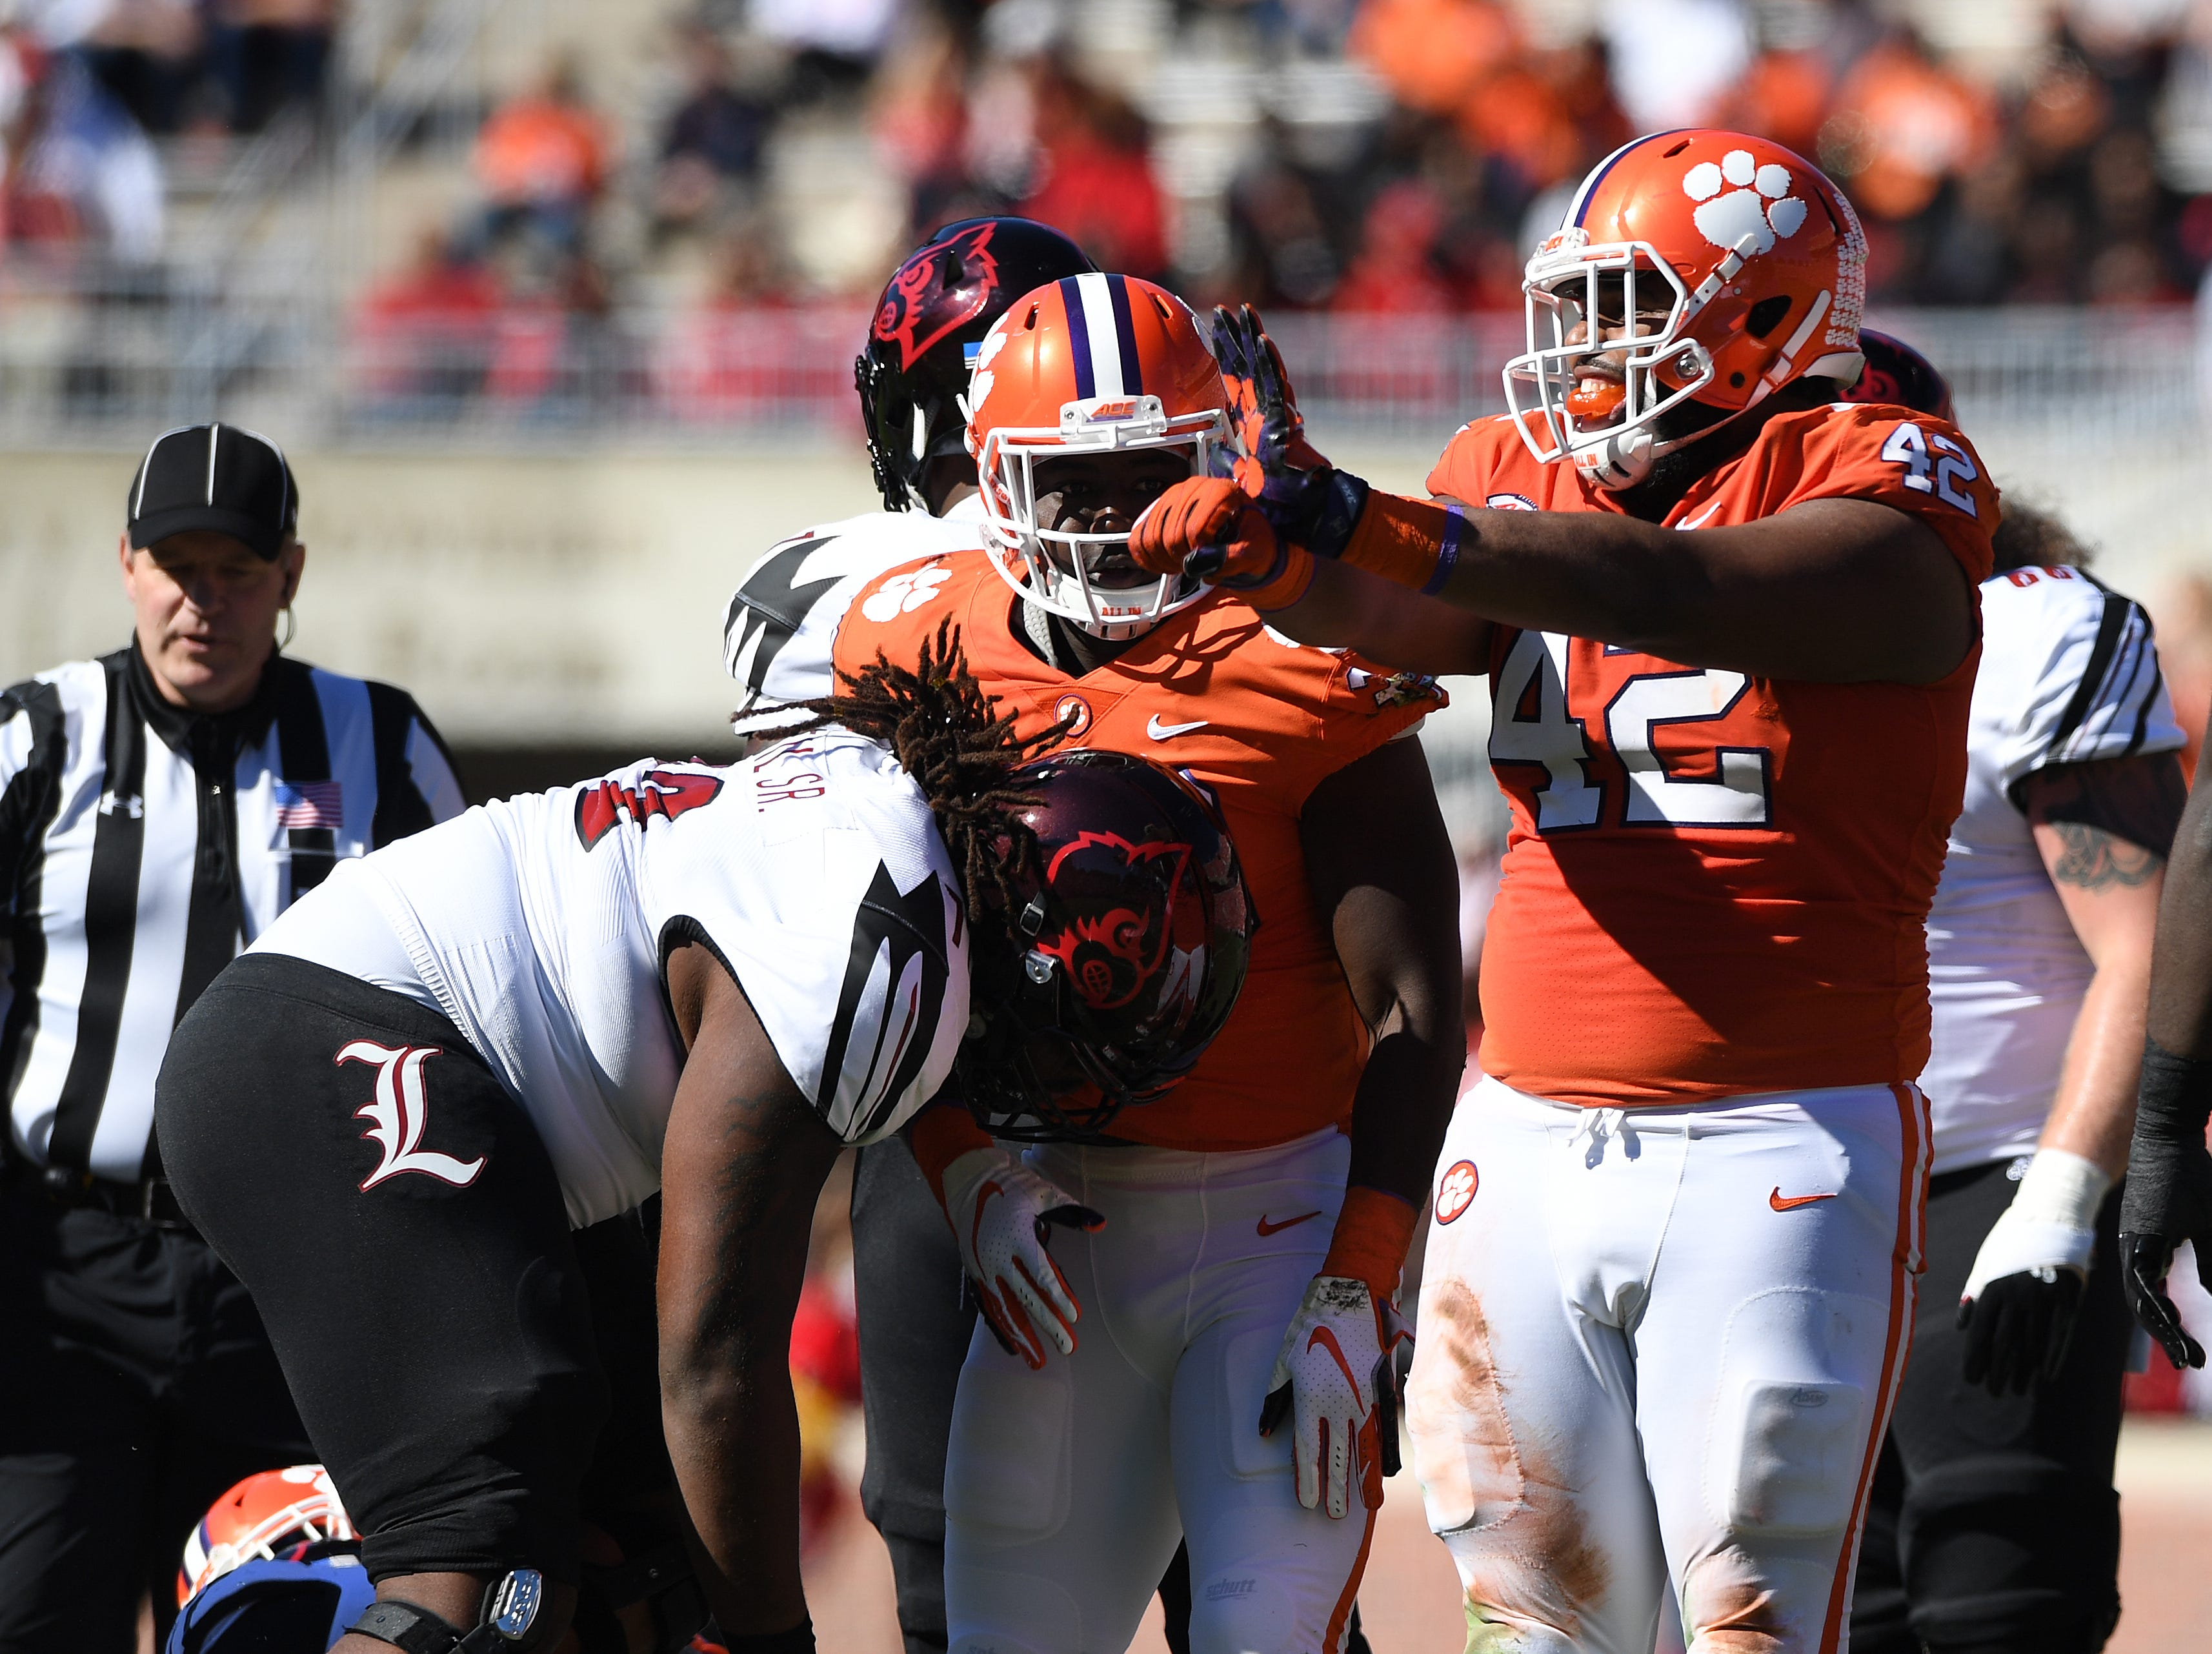 Clemson defensive lineman Christian Wilkins (42) reacts after a defensive stop against Louisville during the 2nd quarter Saturday, November 3, 2018 at Clemson's Memorial Stadium.